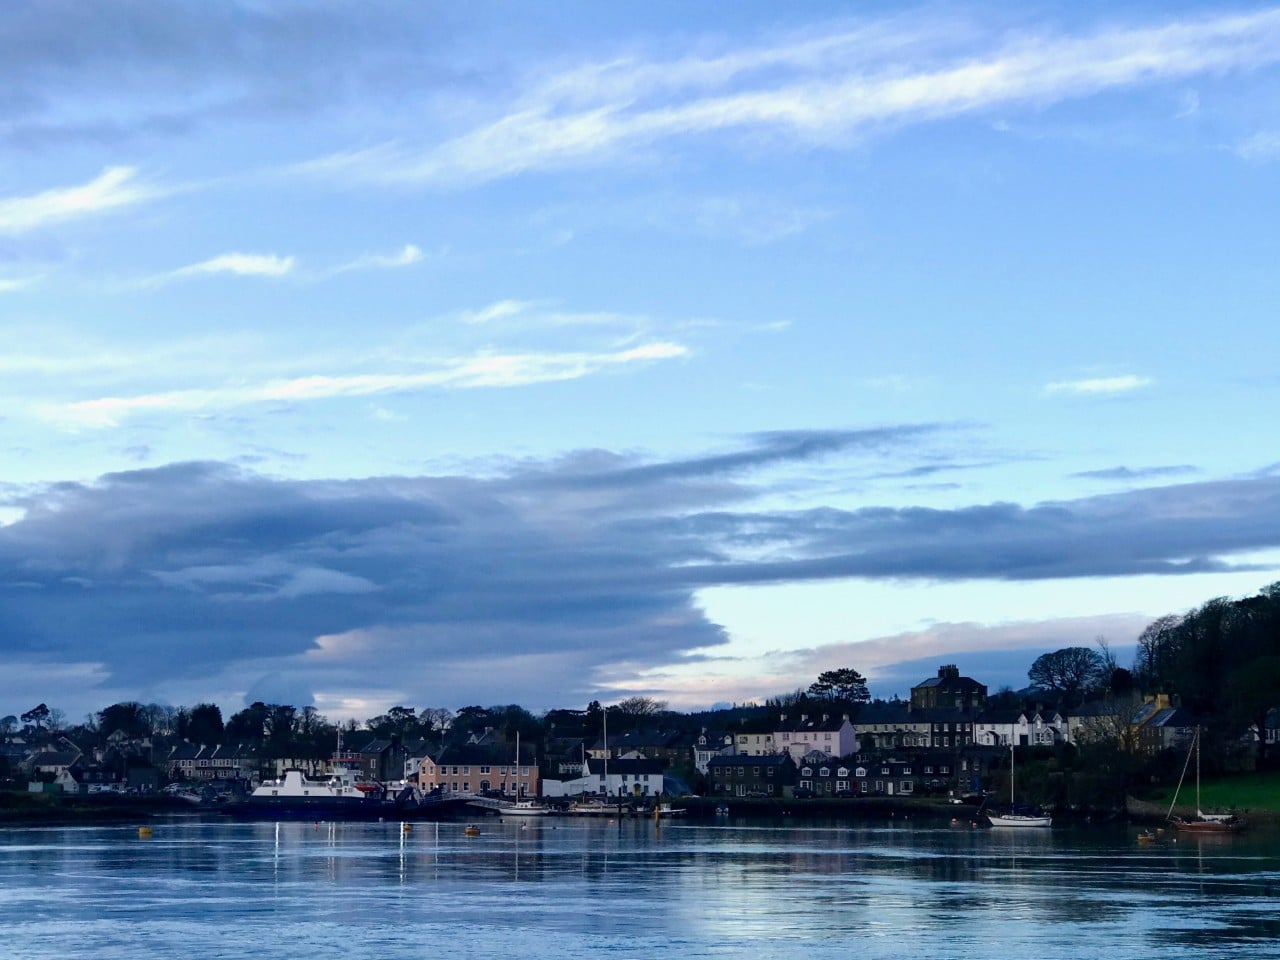 Strangford Lough and town from the ferry